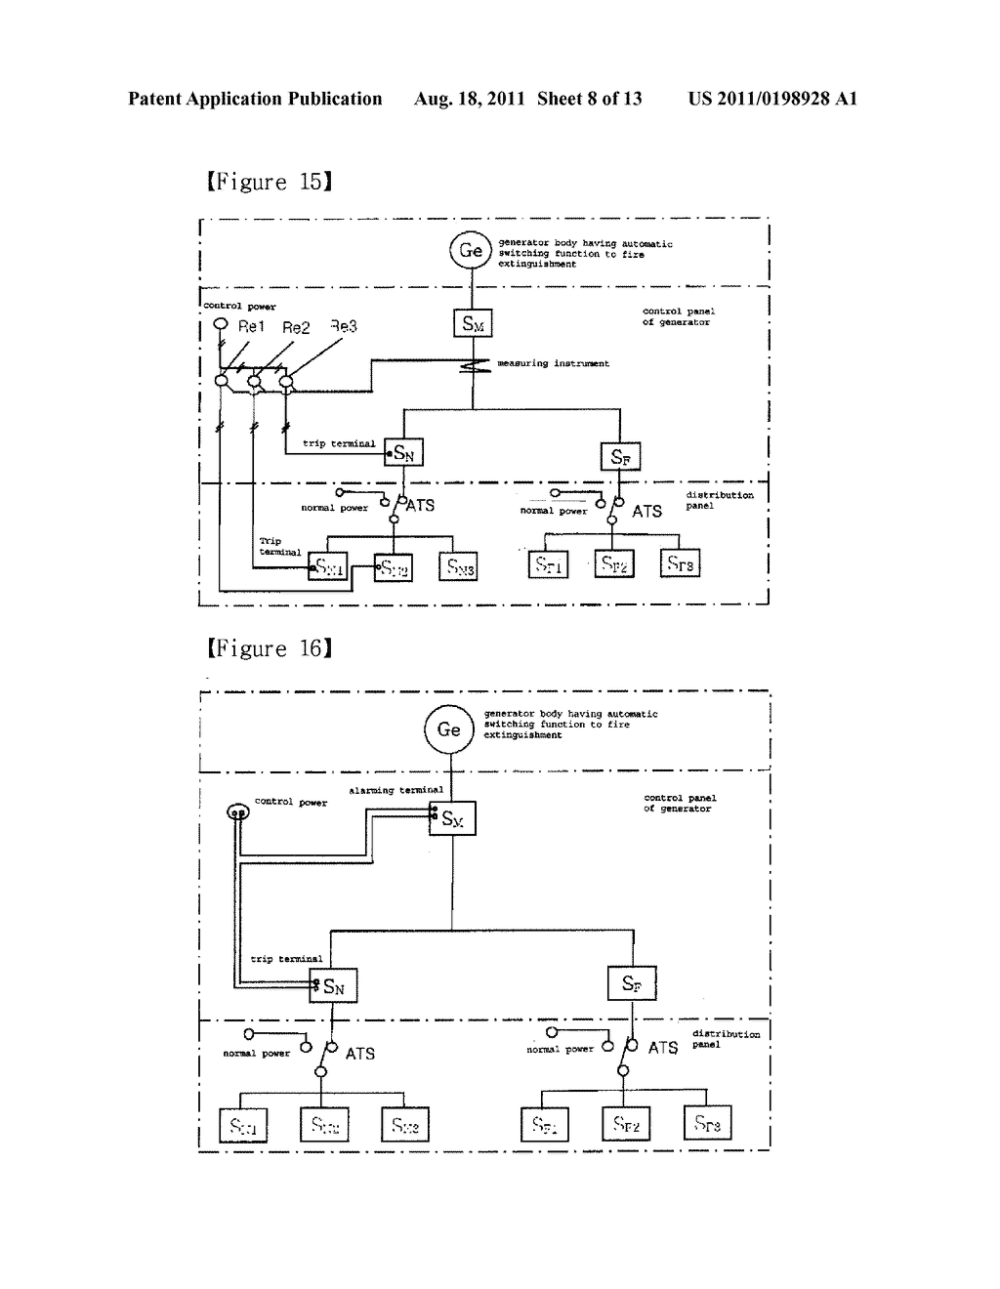 medium resolution of emergency generator power system with reserved fire protection power diagram schematic and image 09